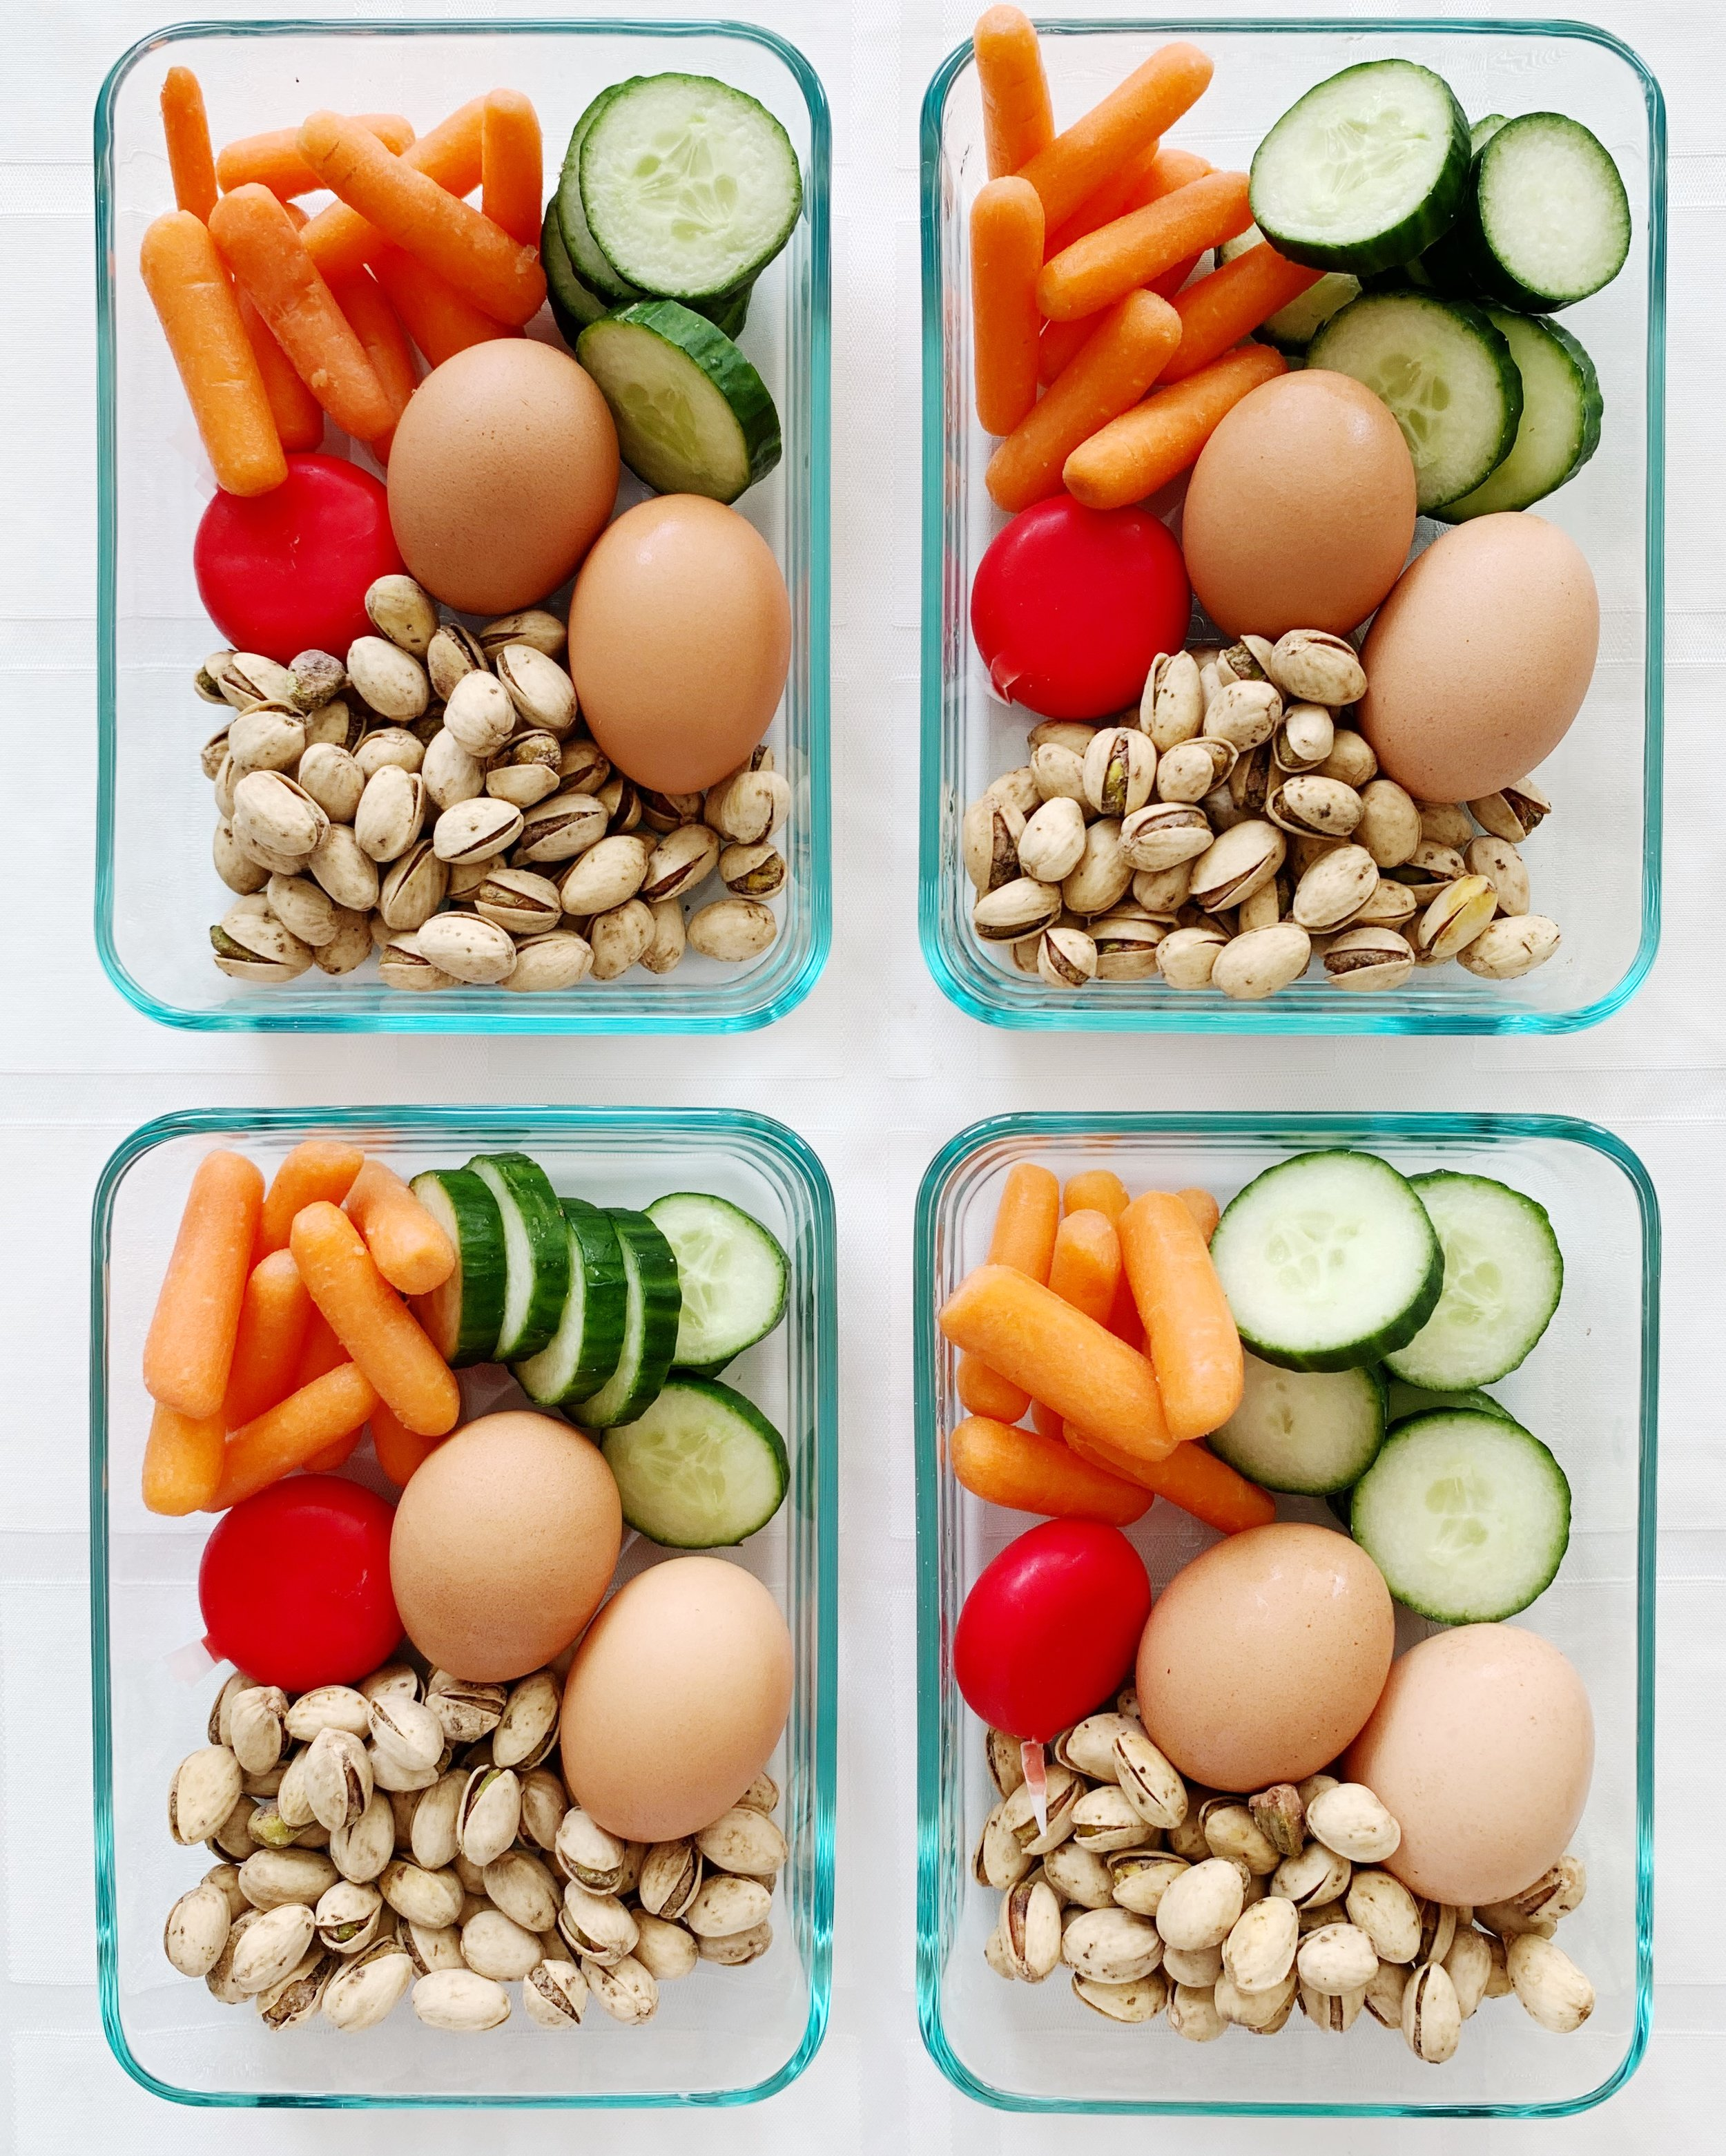 Nuts Cheese and Eggs Bento Box